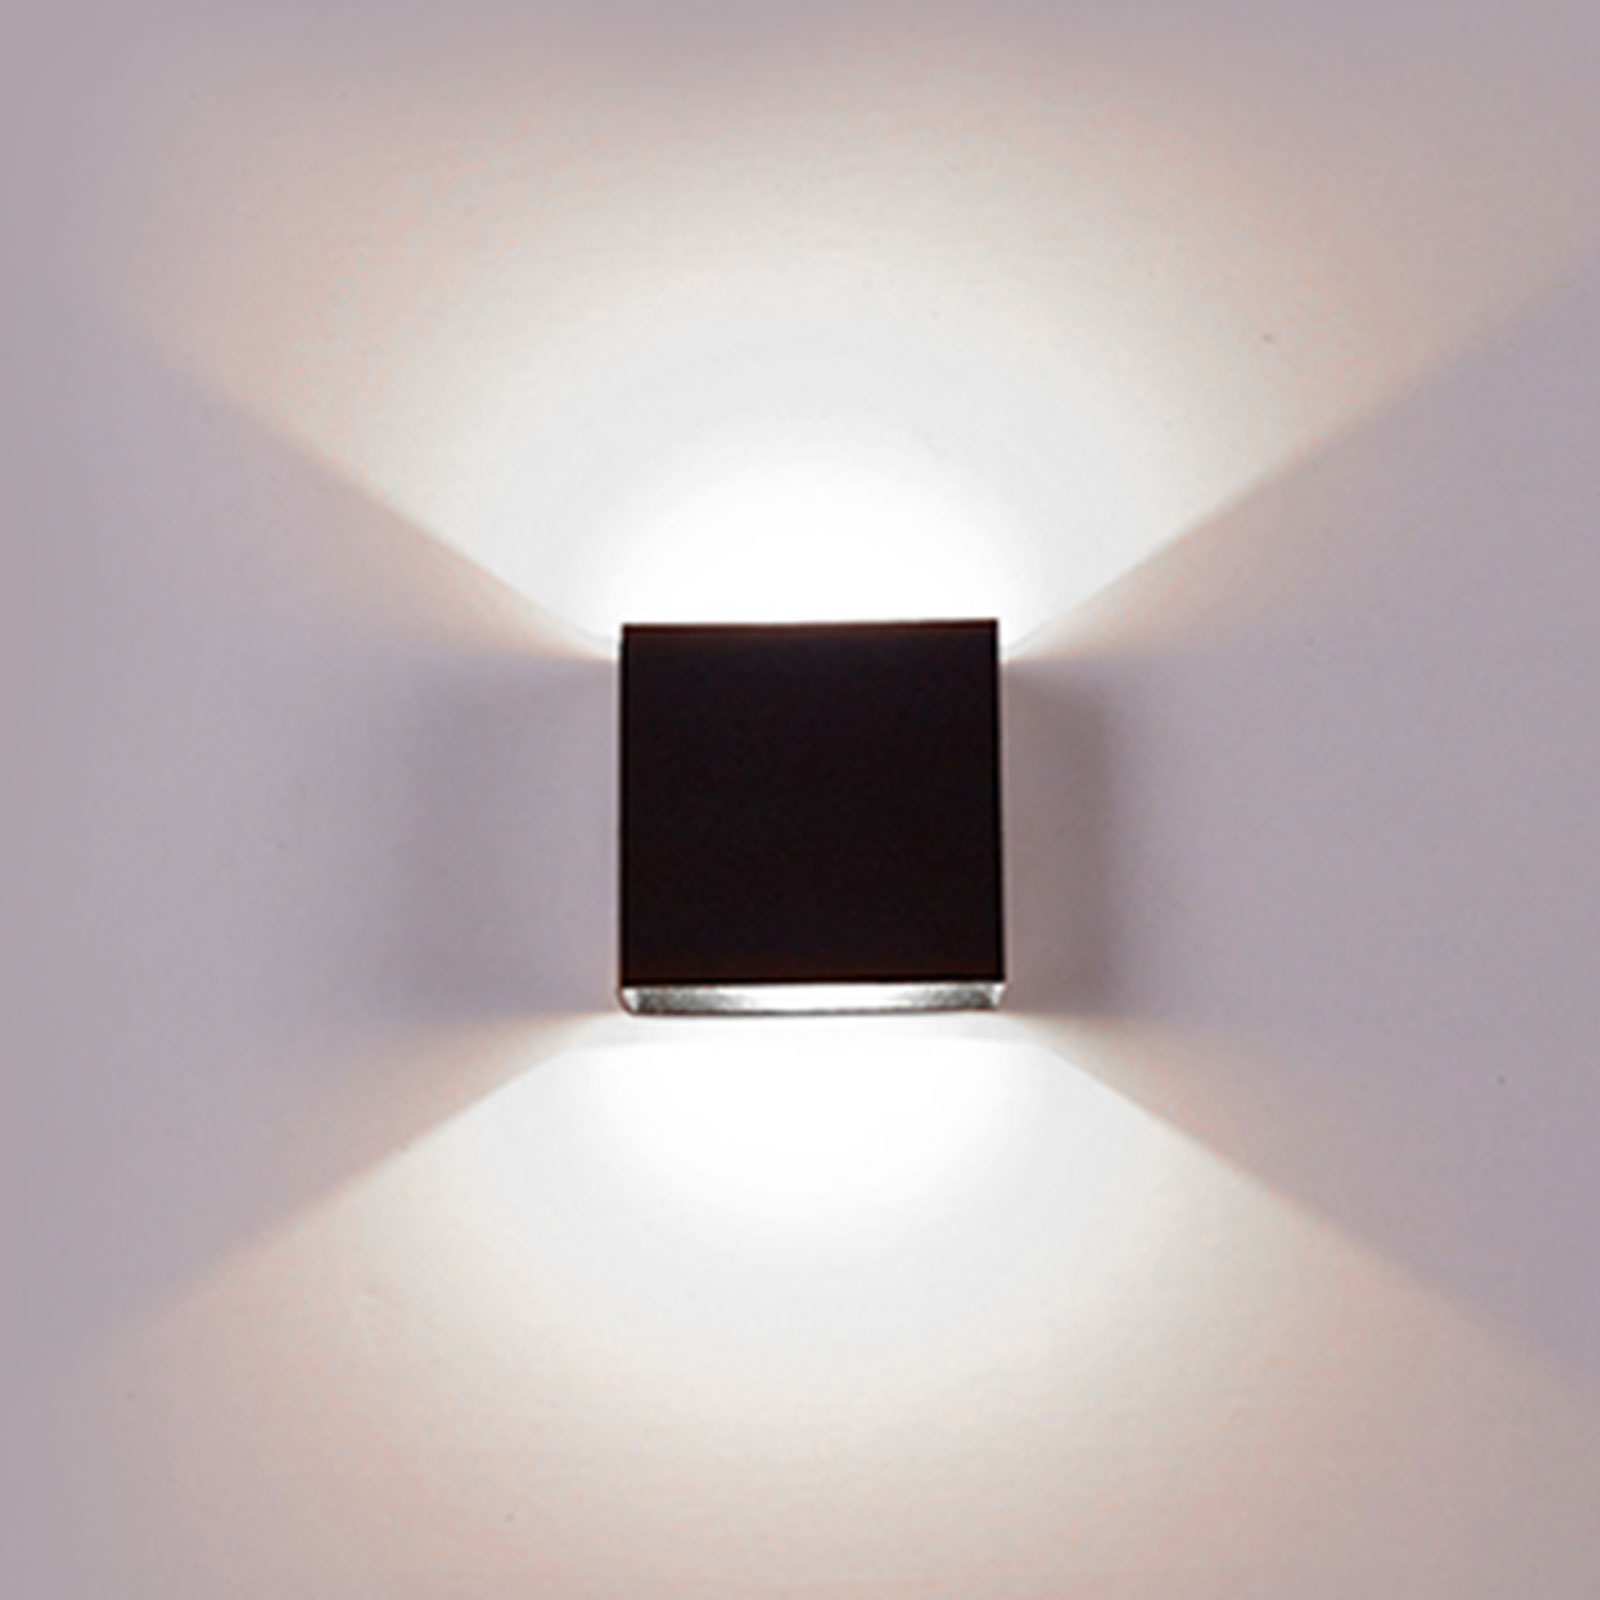 6W-Modern-Cube-2-LED-Wall-Lamp-Up-Down-Indoor-Sconce-Lighting-Home-Decor-Light thumbnail 9